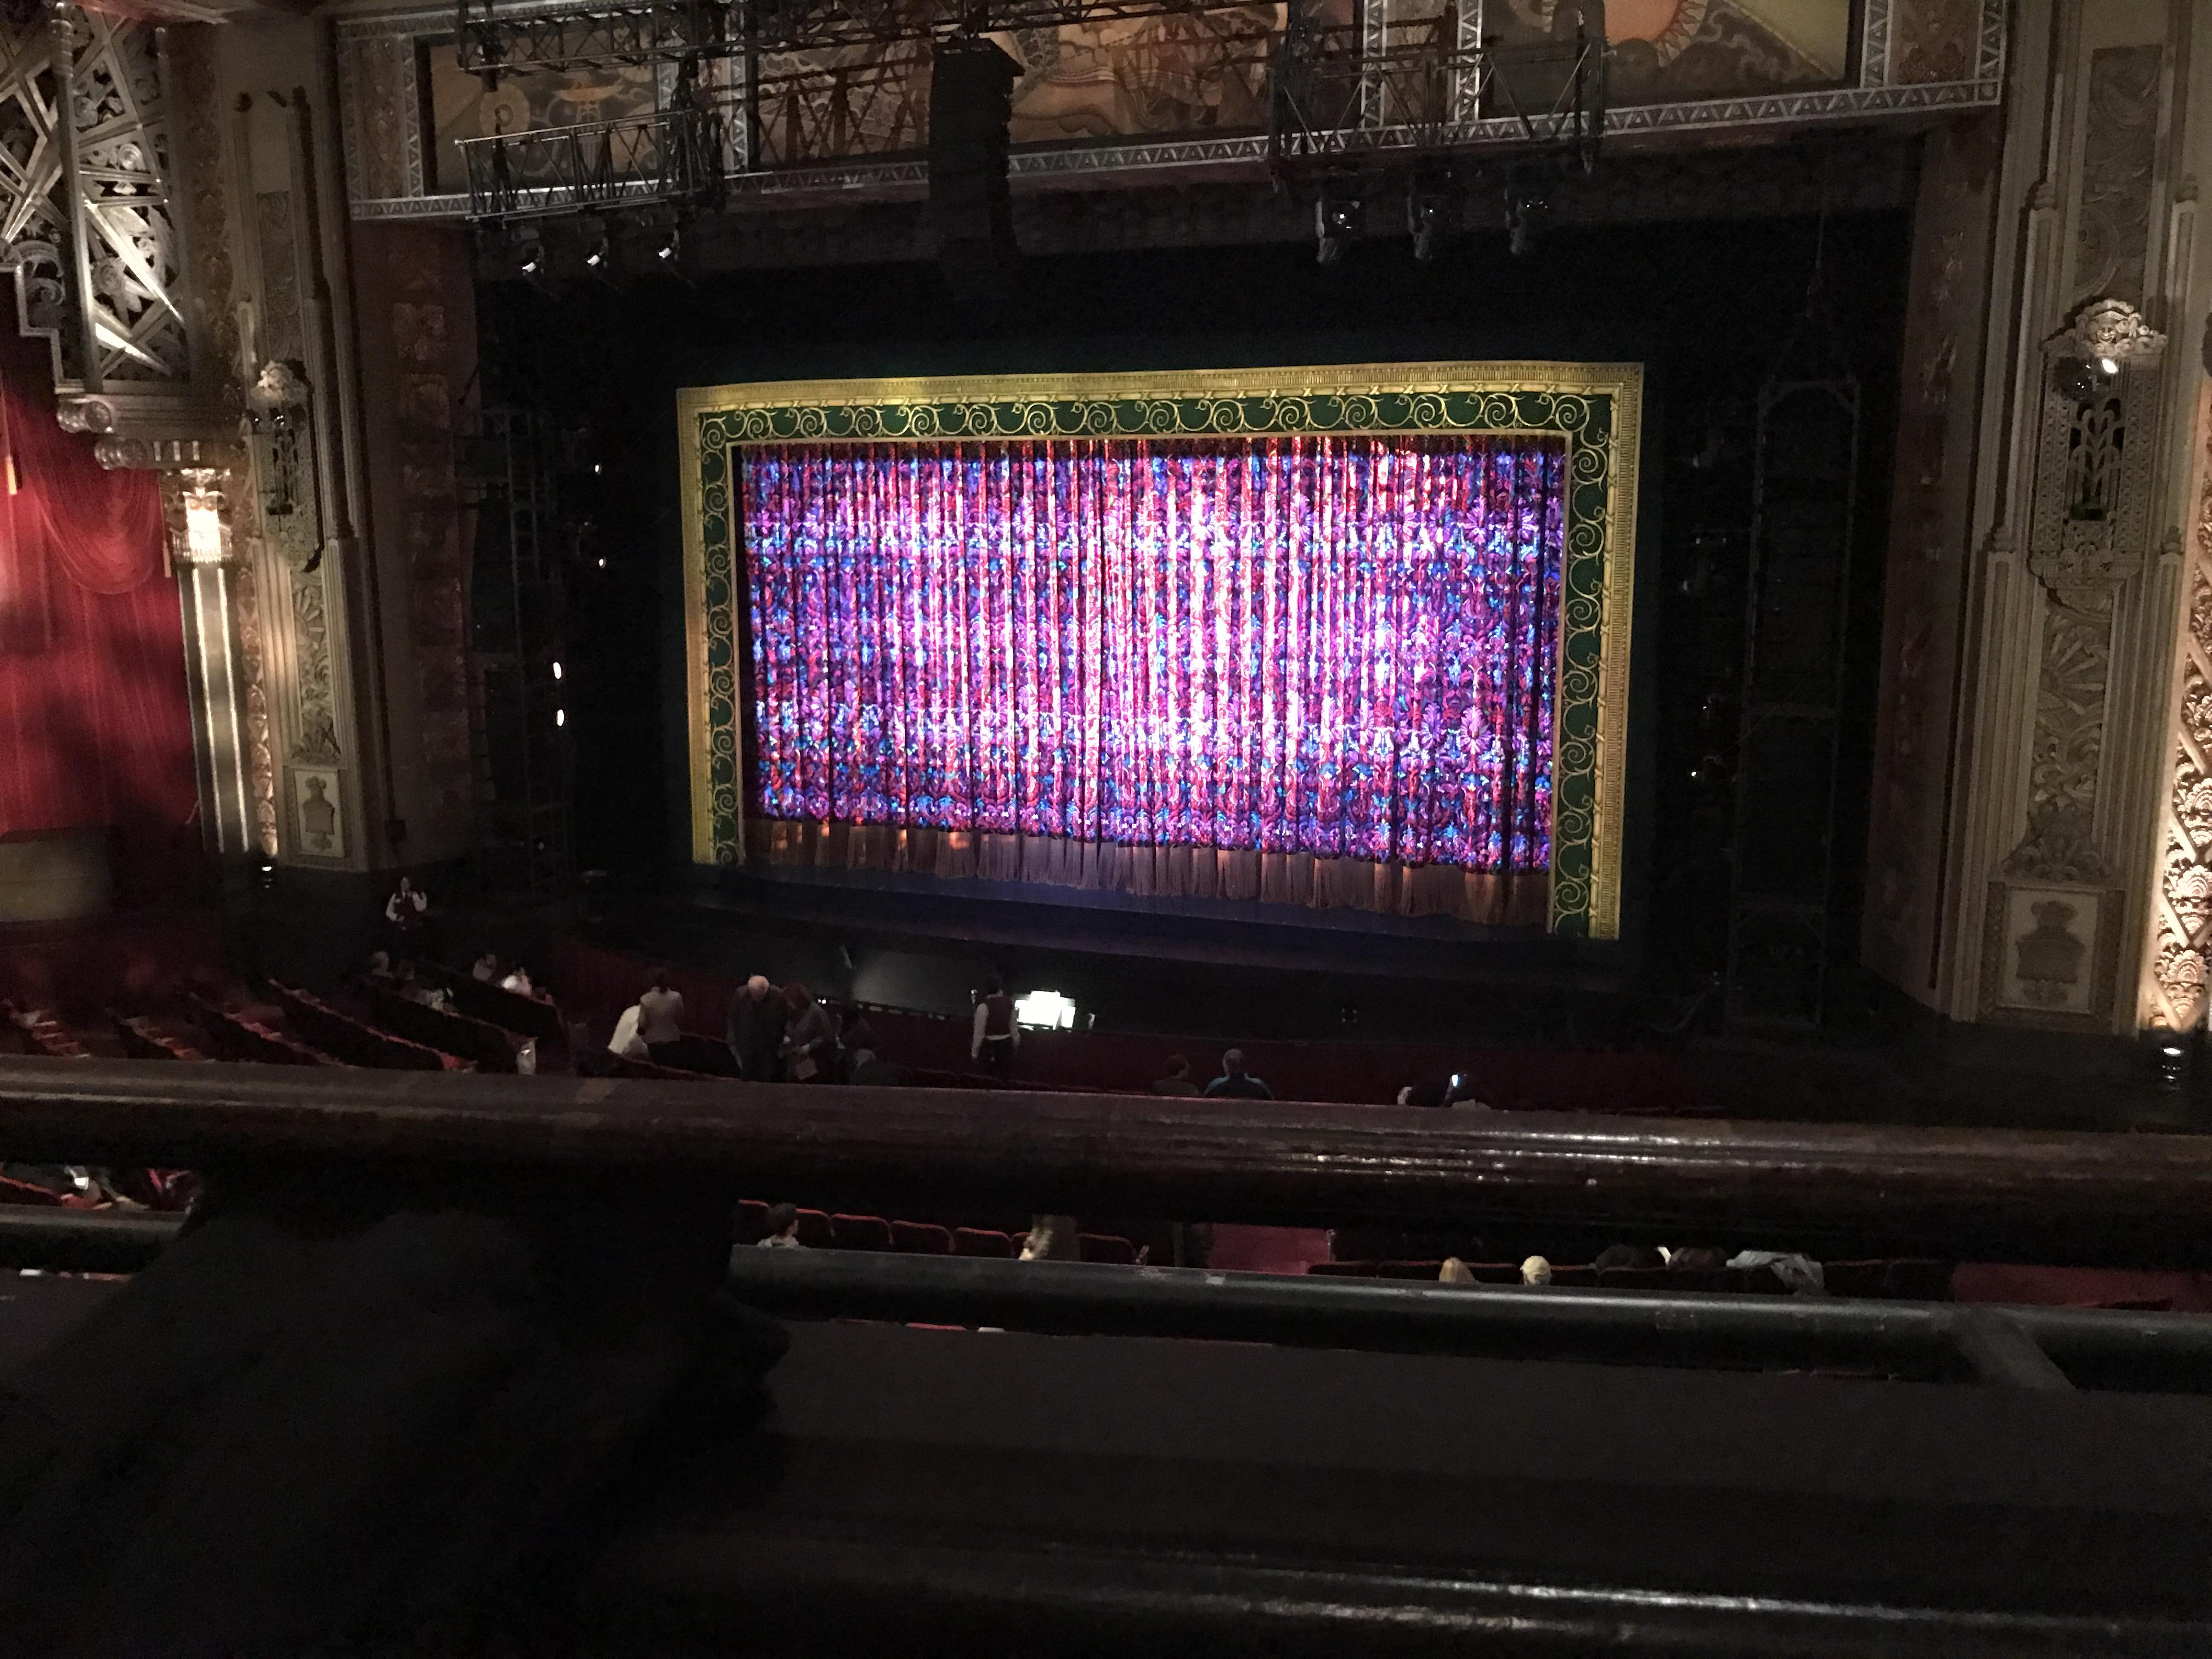 Hollywood Pantages Theatre Section Mezzanine RC Row A Seat 208